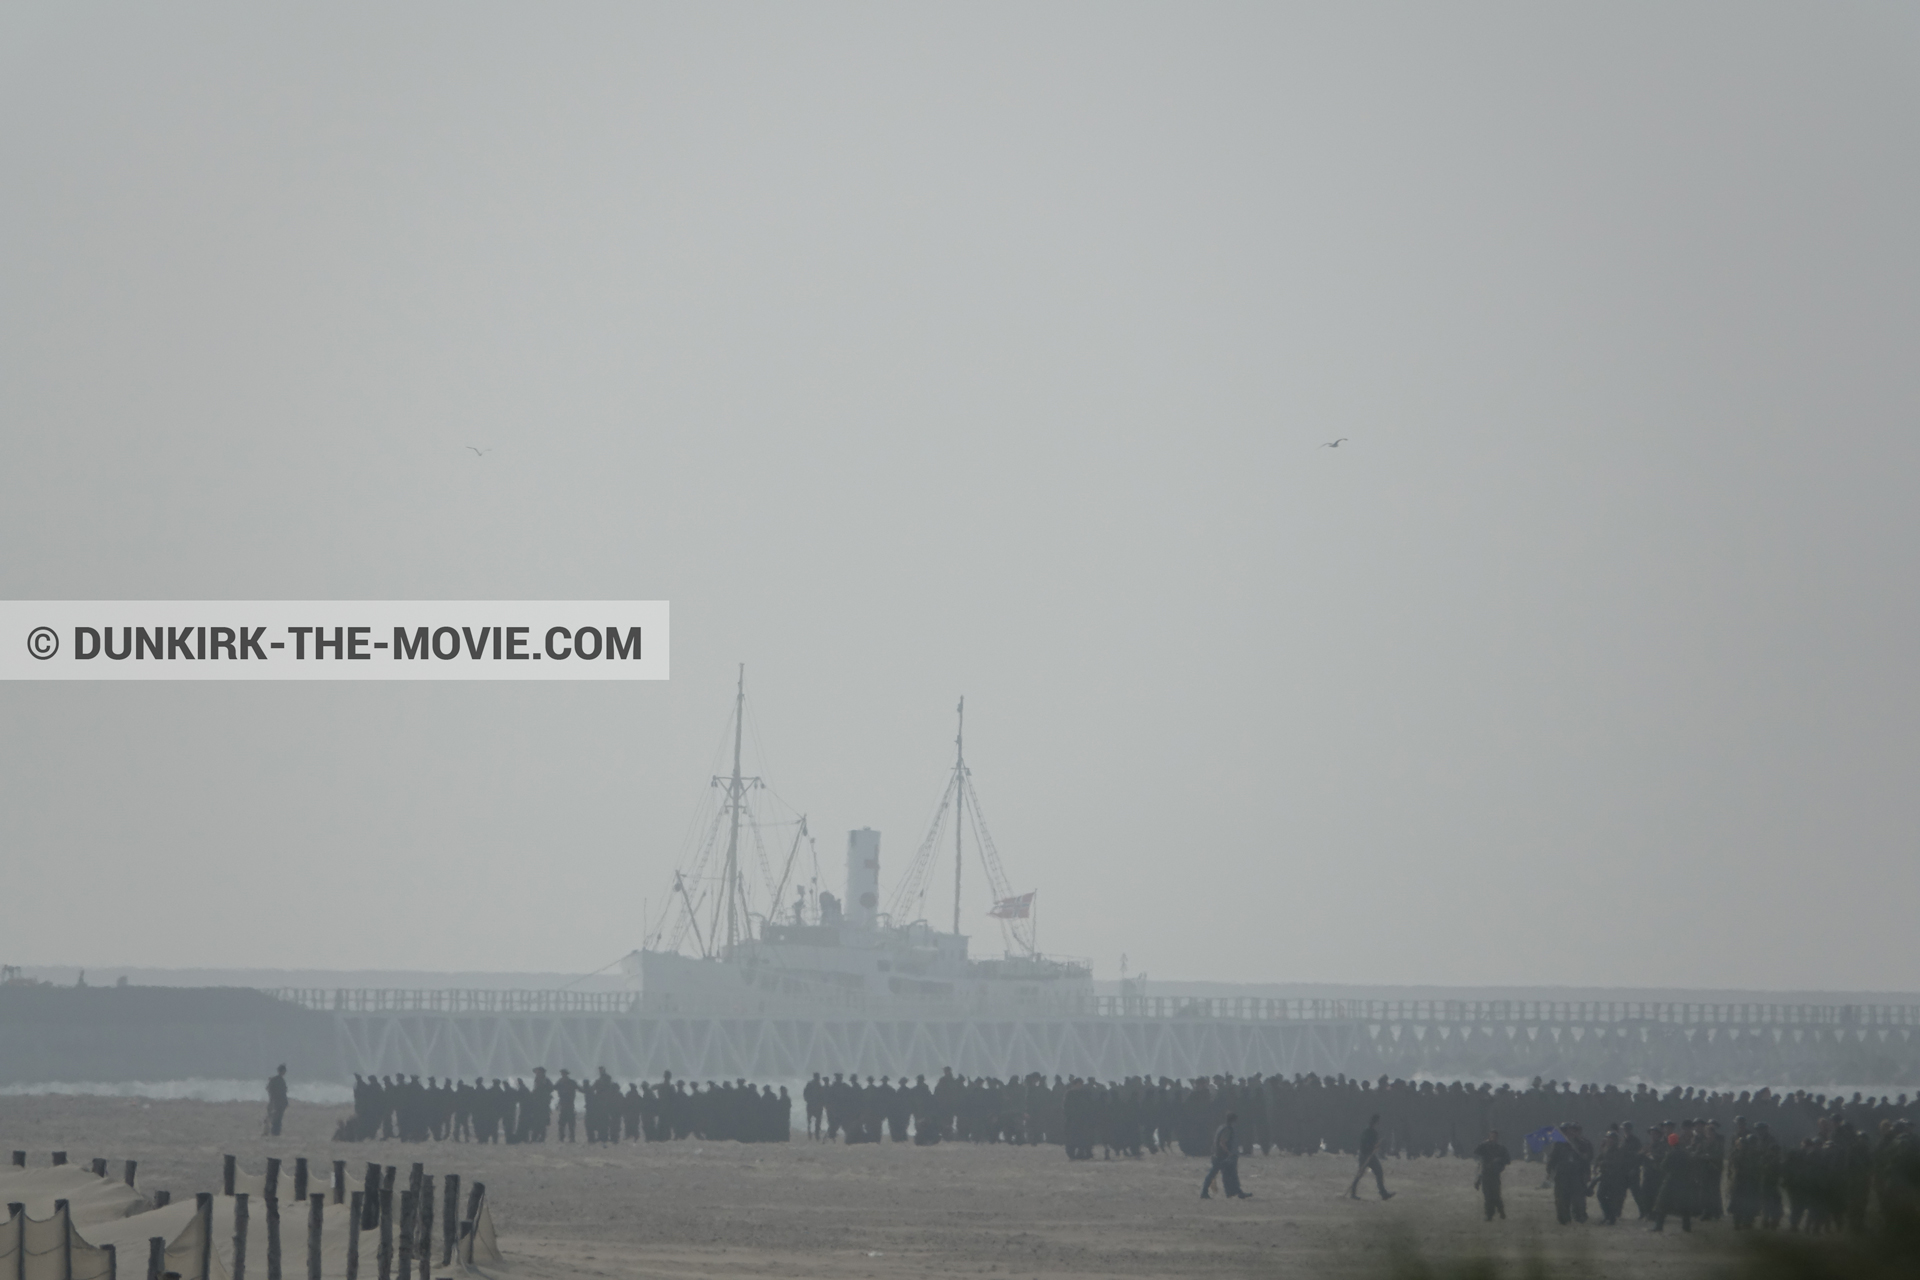 Picture with boat, supernumeraries, beach,  from behind the scene of the Dunkirk movie by Nolan